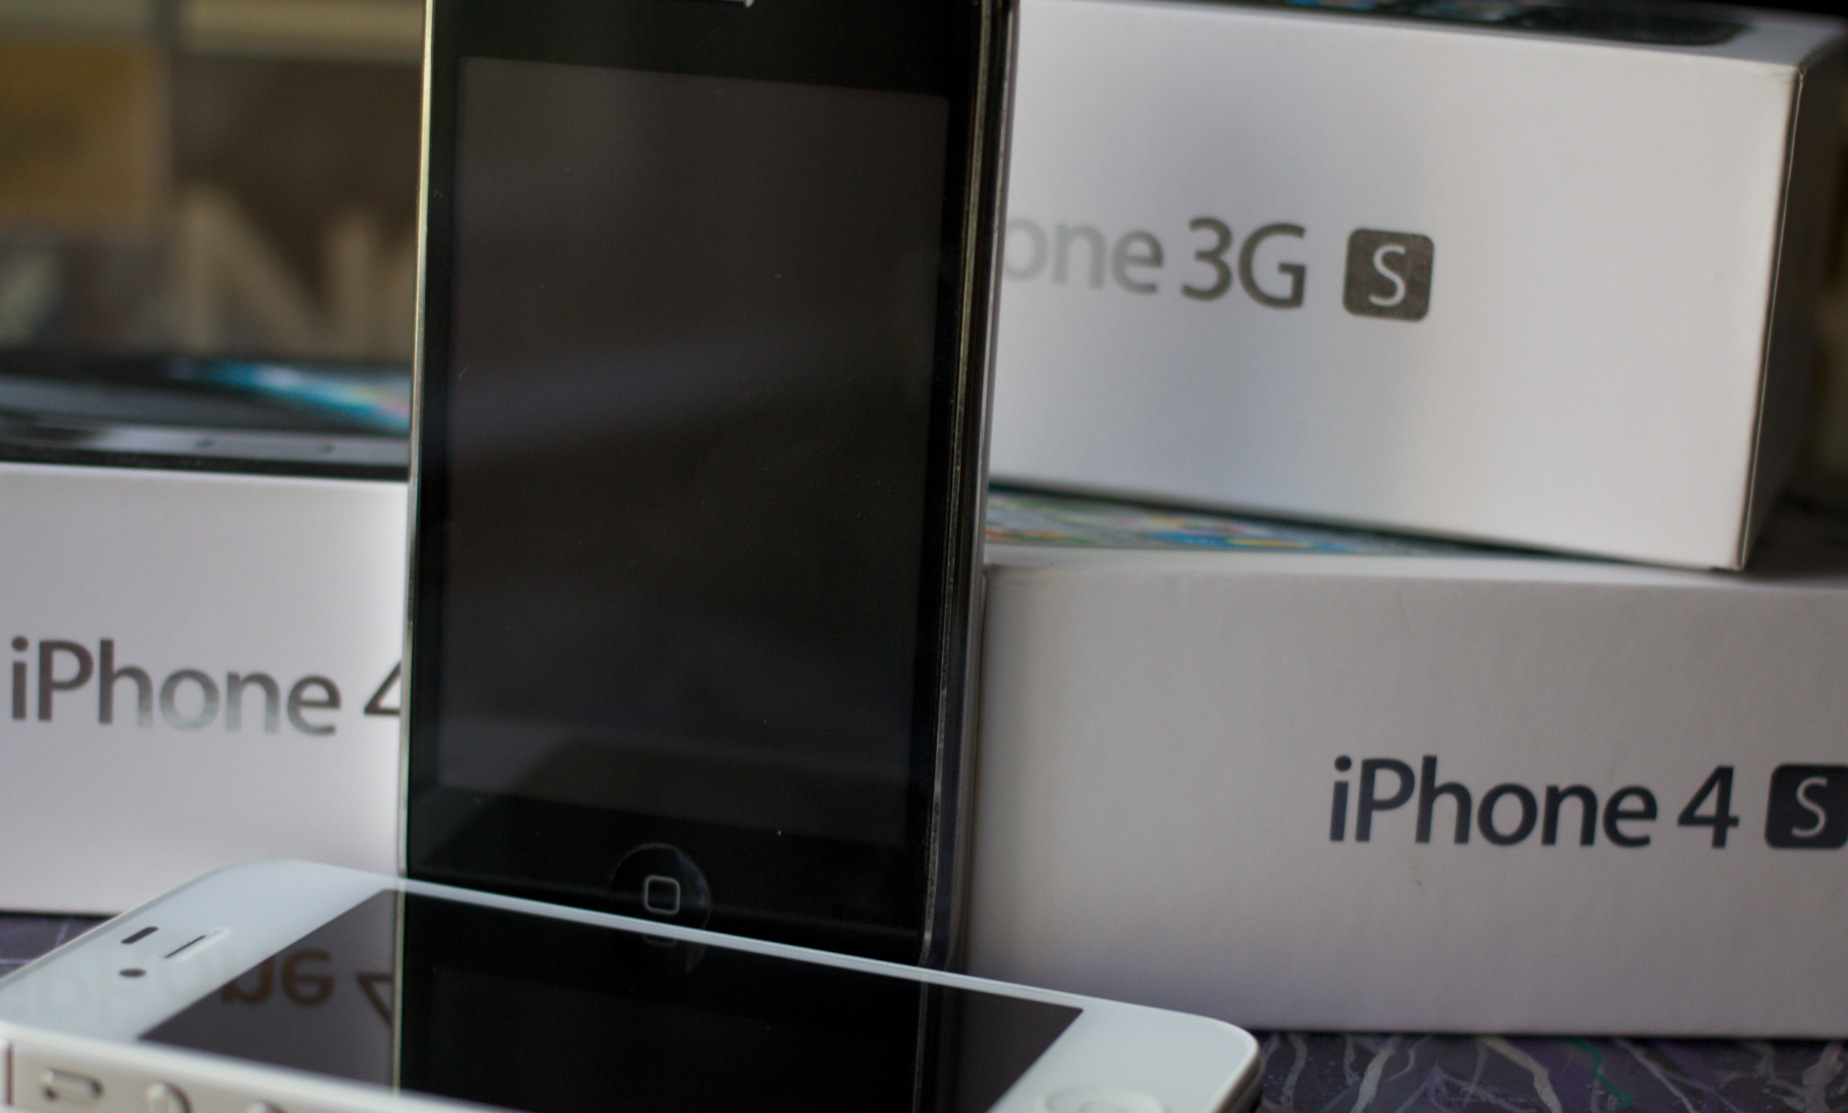 What is the future of the iPhone 3GS?